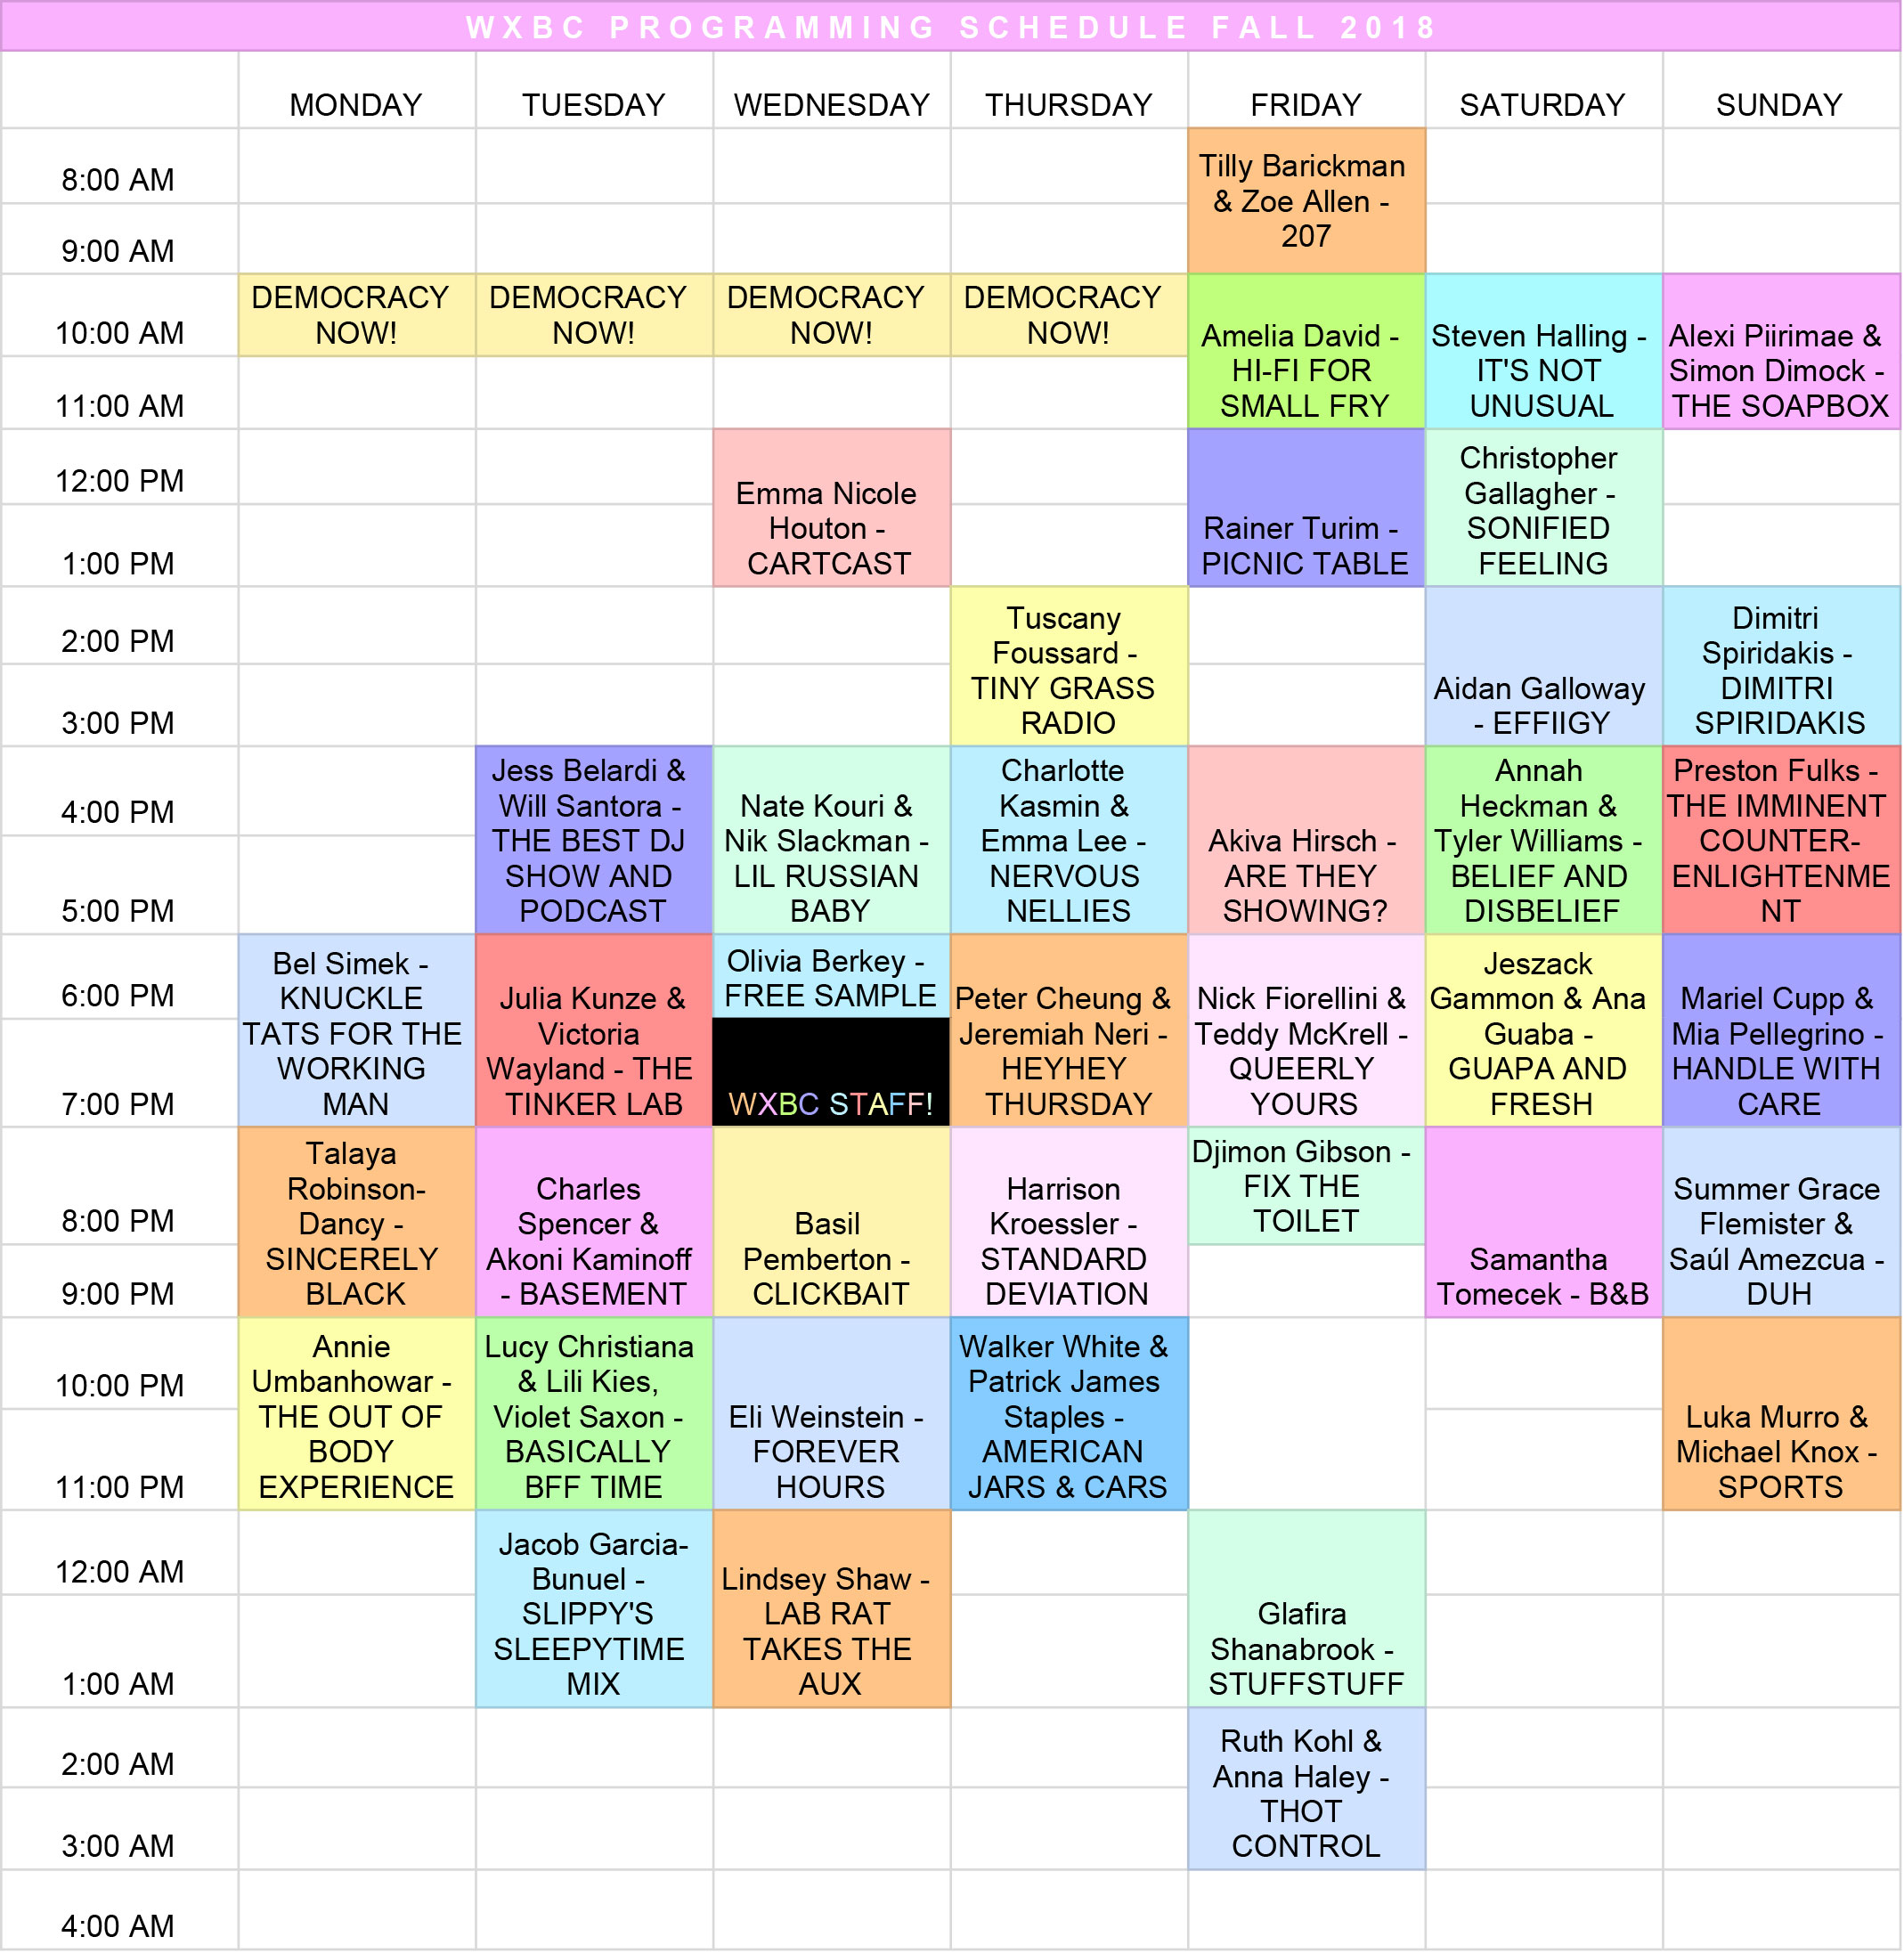 WXBC Programming Schedule Fall 2018